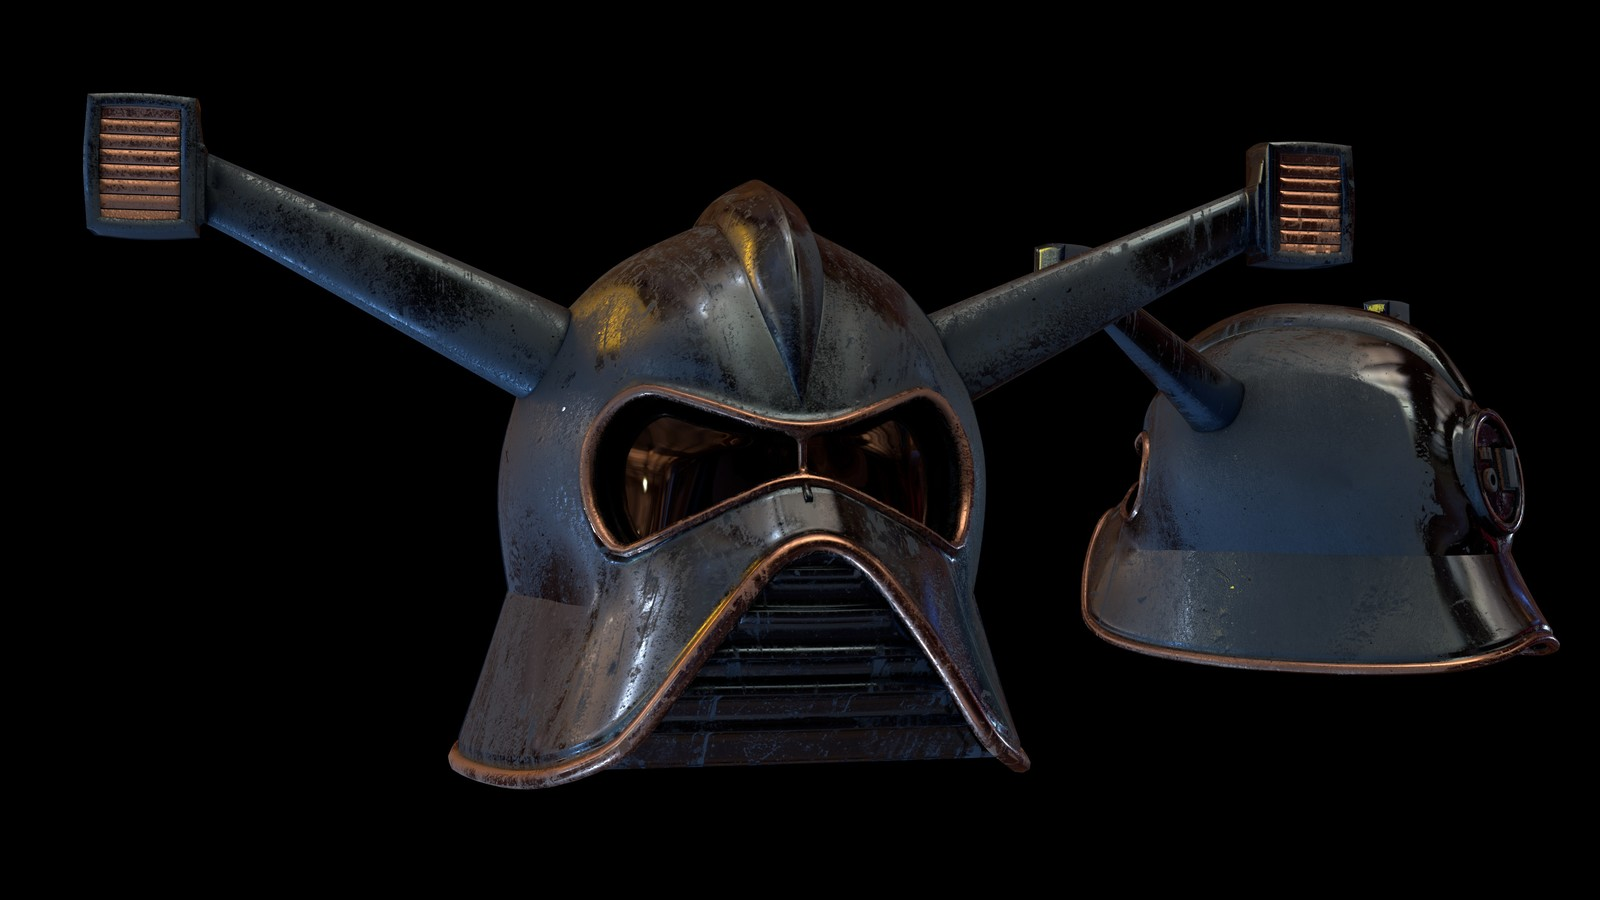 The V.C.s trooper helmet